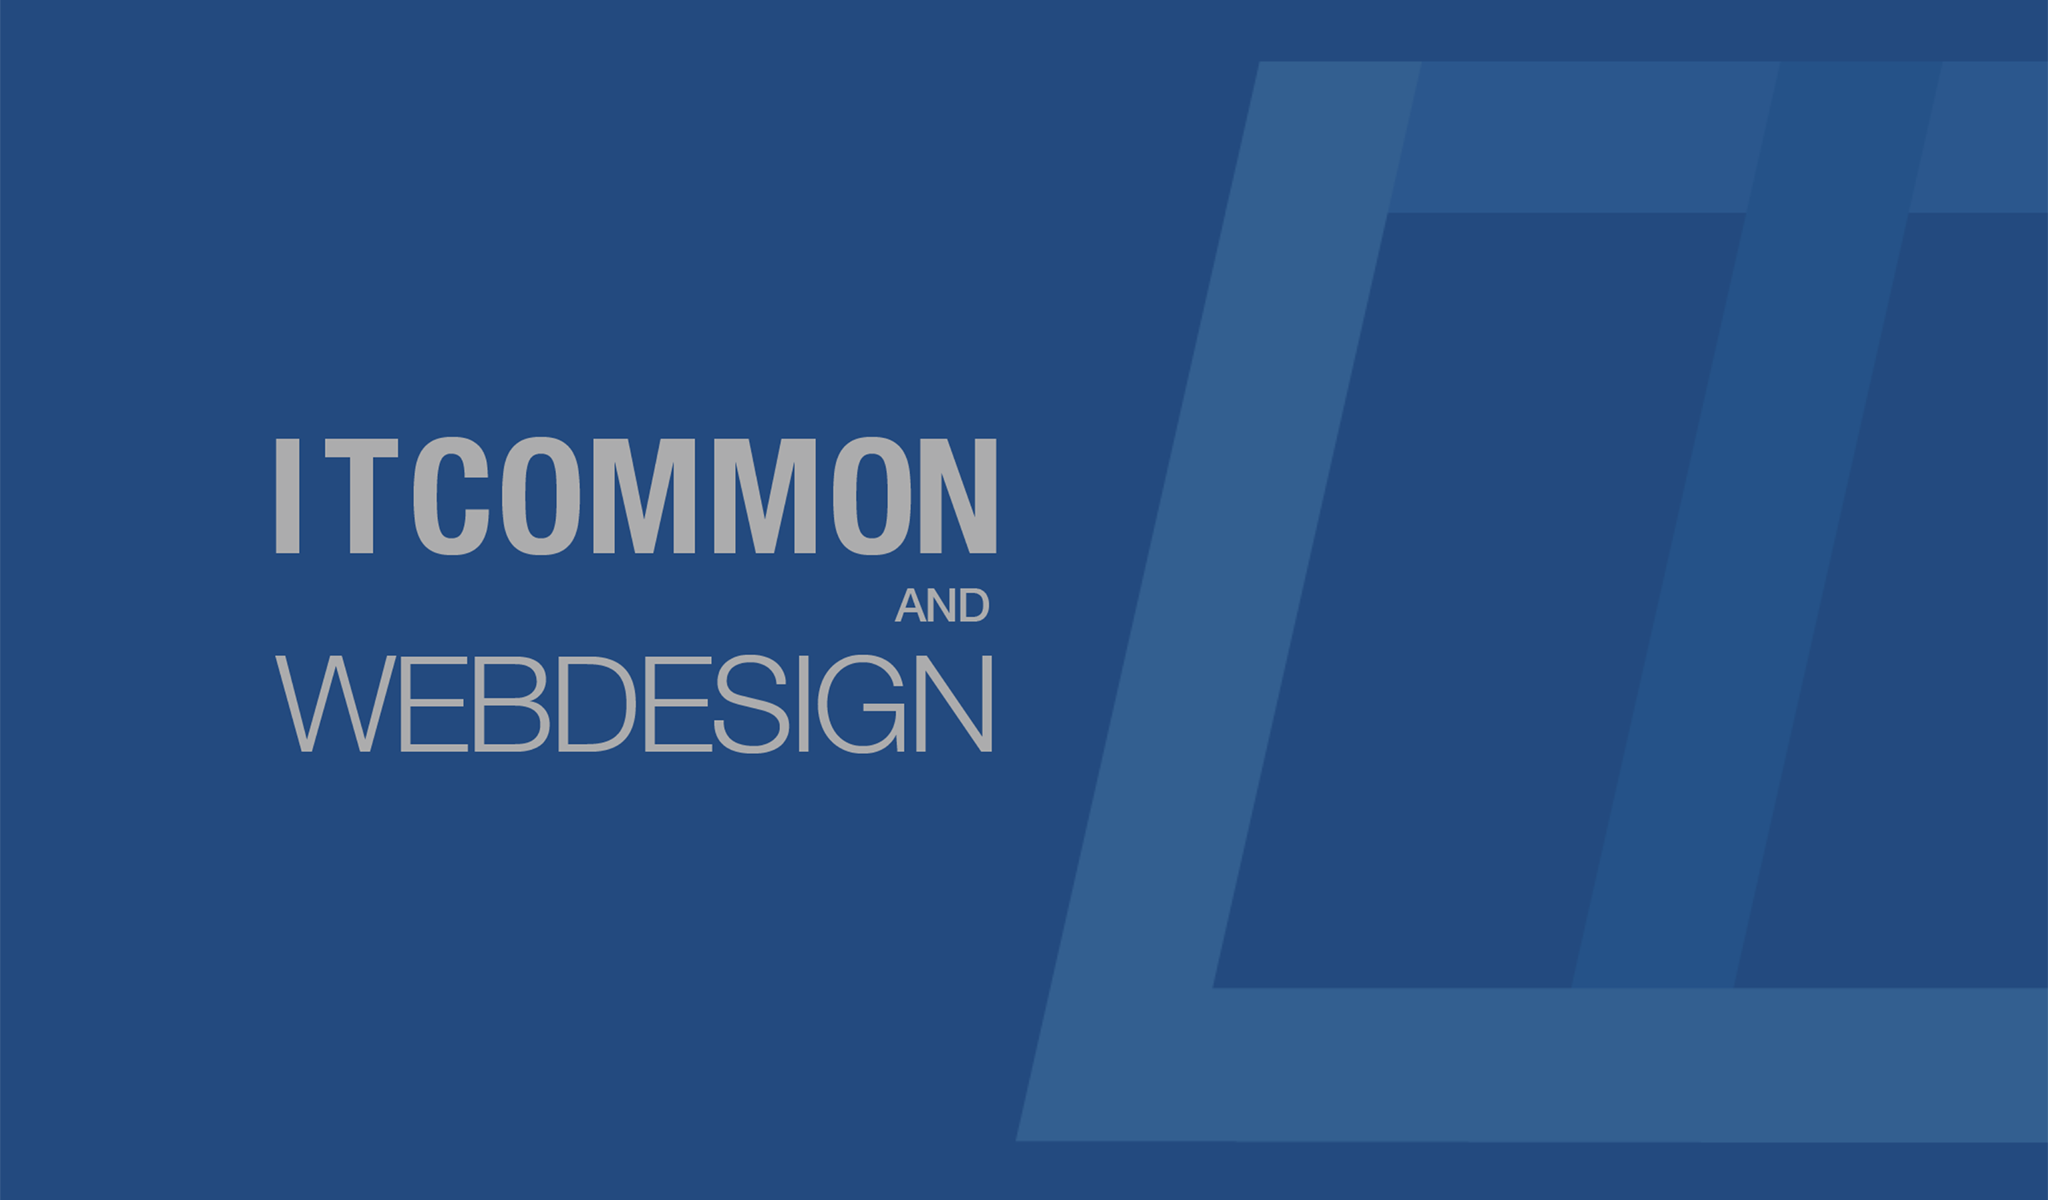 ITCOMMON AND WEBDESIGN